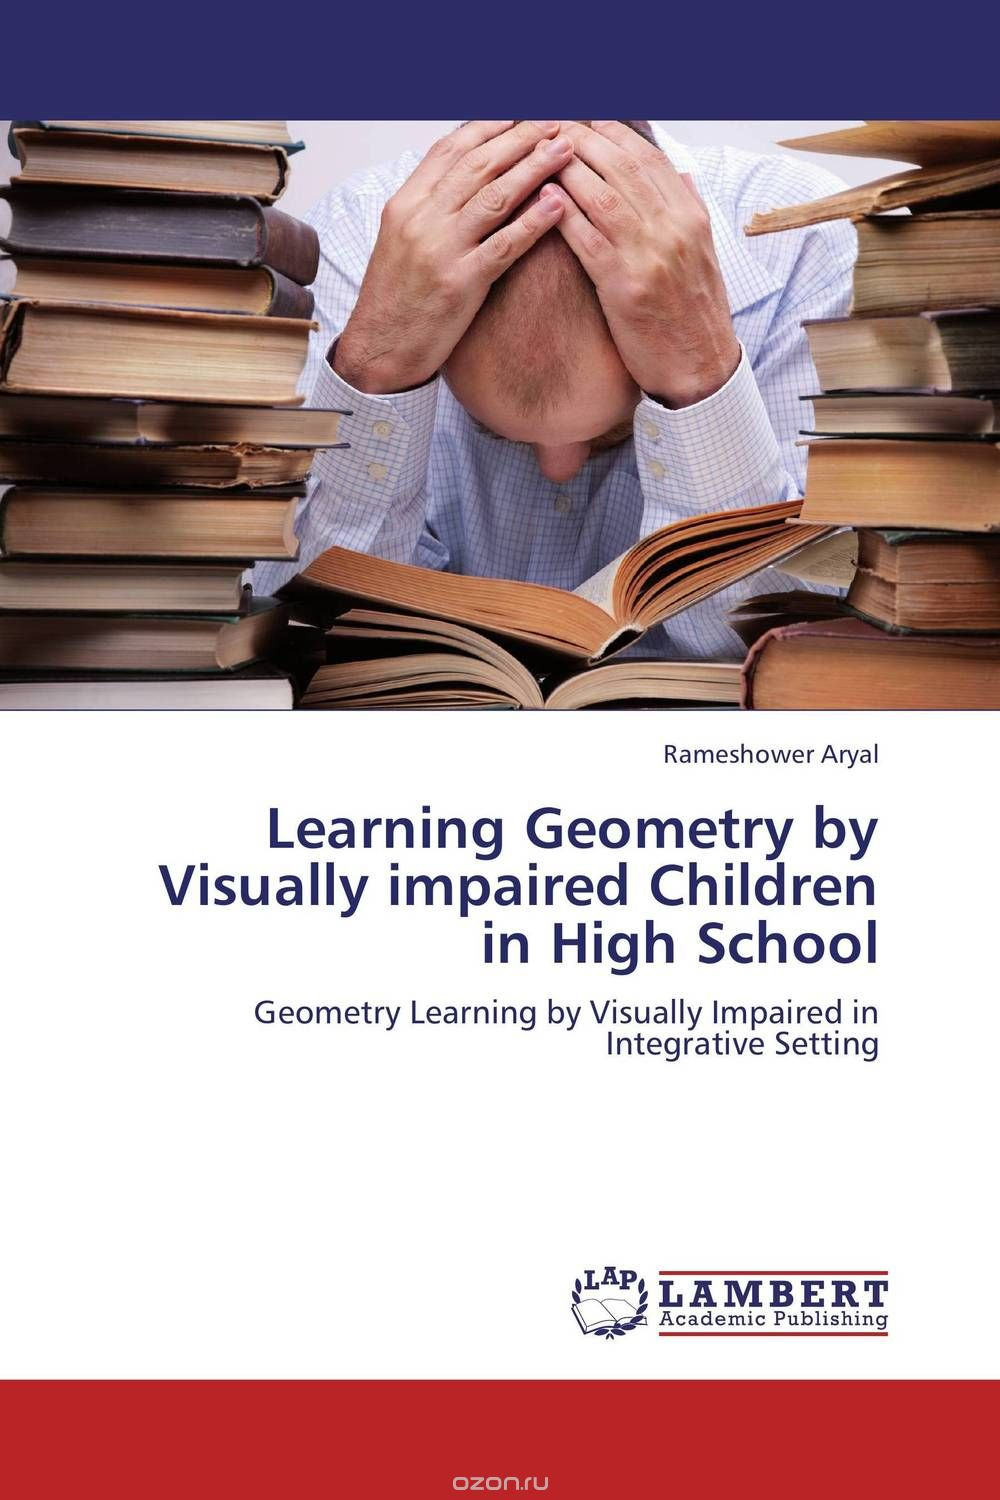 Learning Geometry by Visually impaired Children in High School